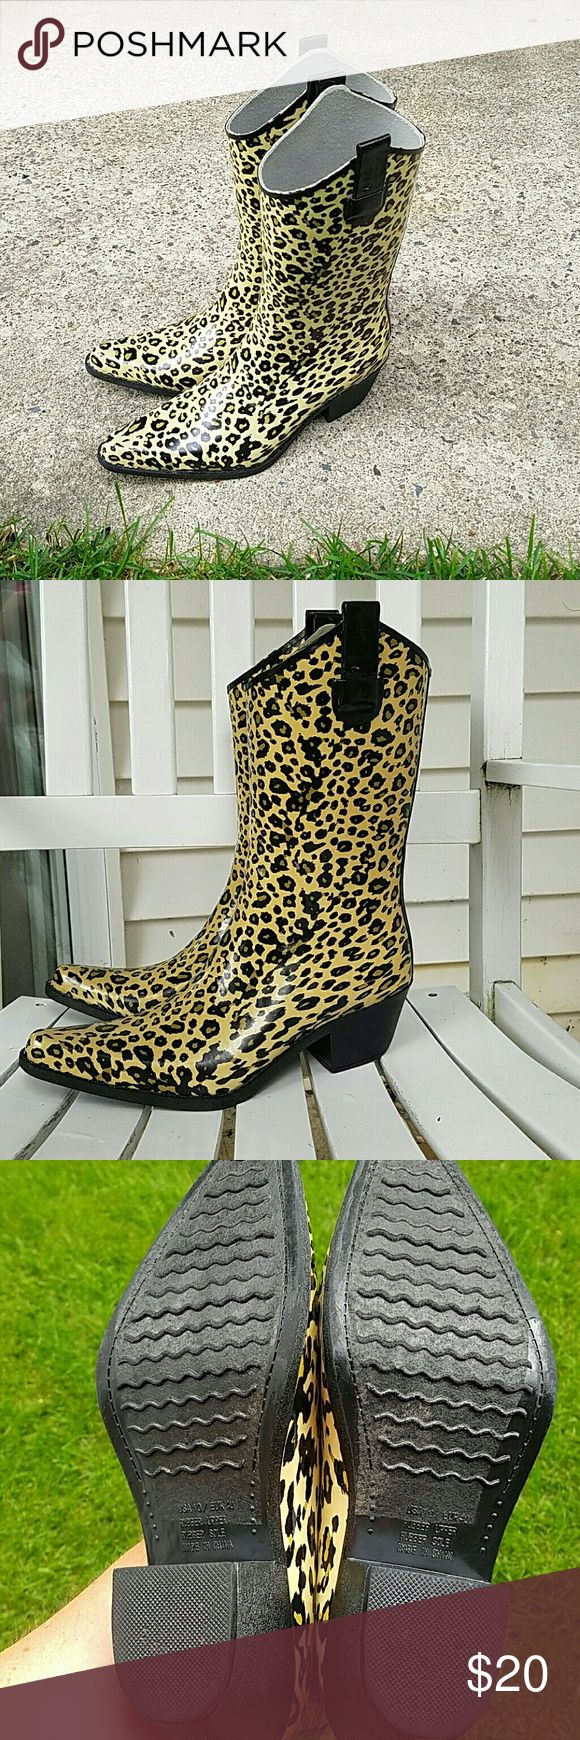 "Super Cute Leopard Print Rubber Cowboy Boots! Really fun rain boots!! Leopard print cowboy boot style, with approx.2"" heel.  They are marked a 10 (Eur 40,) which technically they may be due to length of insole, but...with the pointed toe, they are definitely going to fit a size 9 (or 9 1/2?) much better.  Worn once, in the garden, so no scuffing or rubbing from hard surfaces. They do have some light soil marking on the sole that I just cannot get off because of the texture of the rubber…"